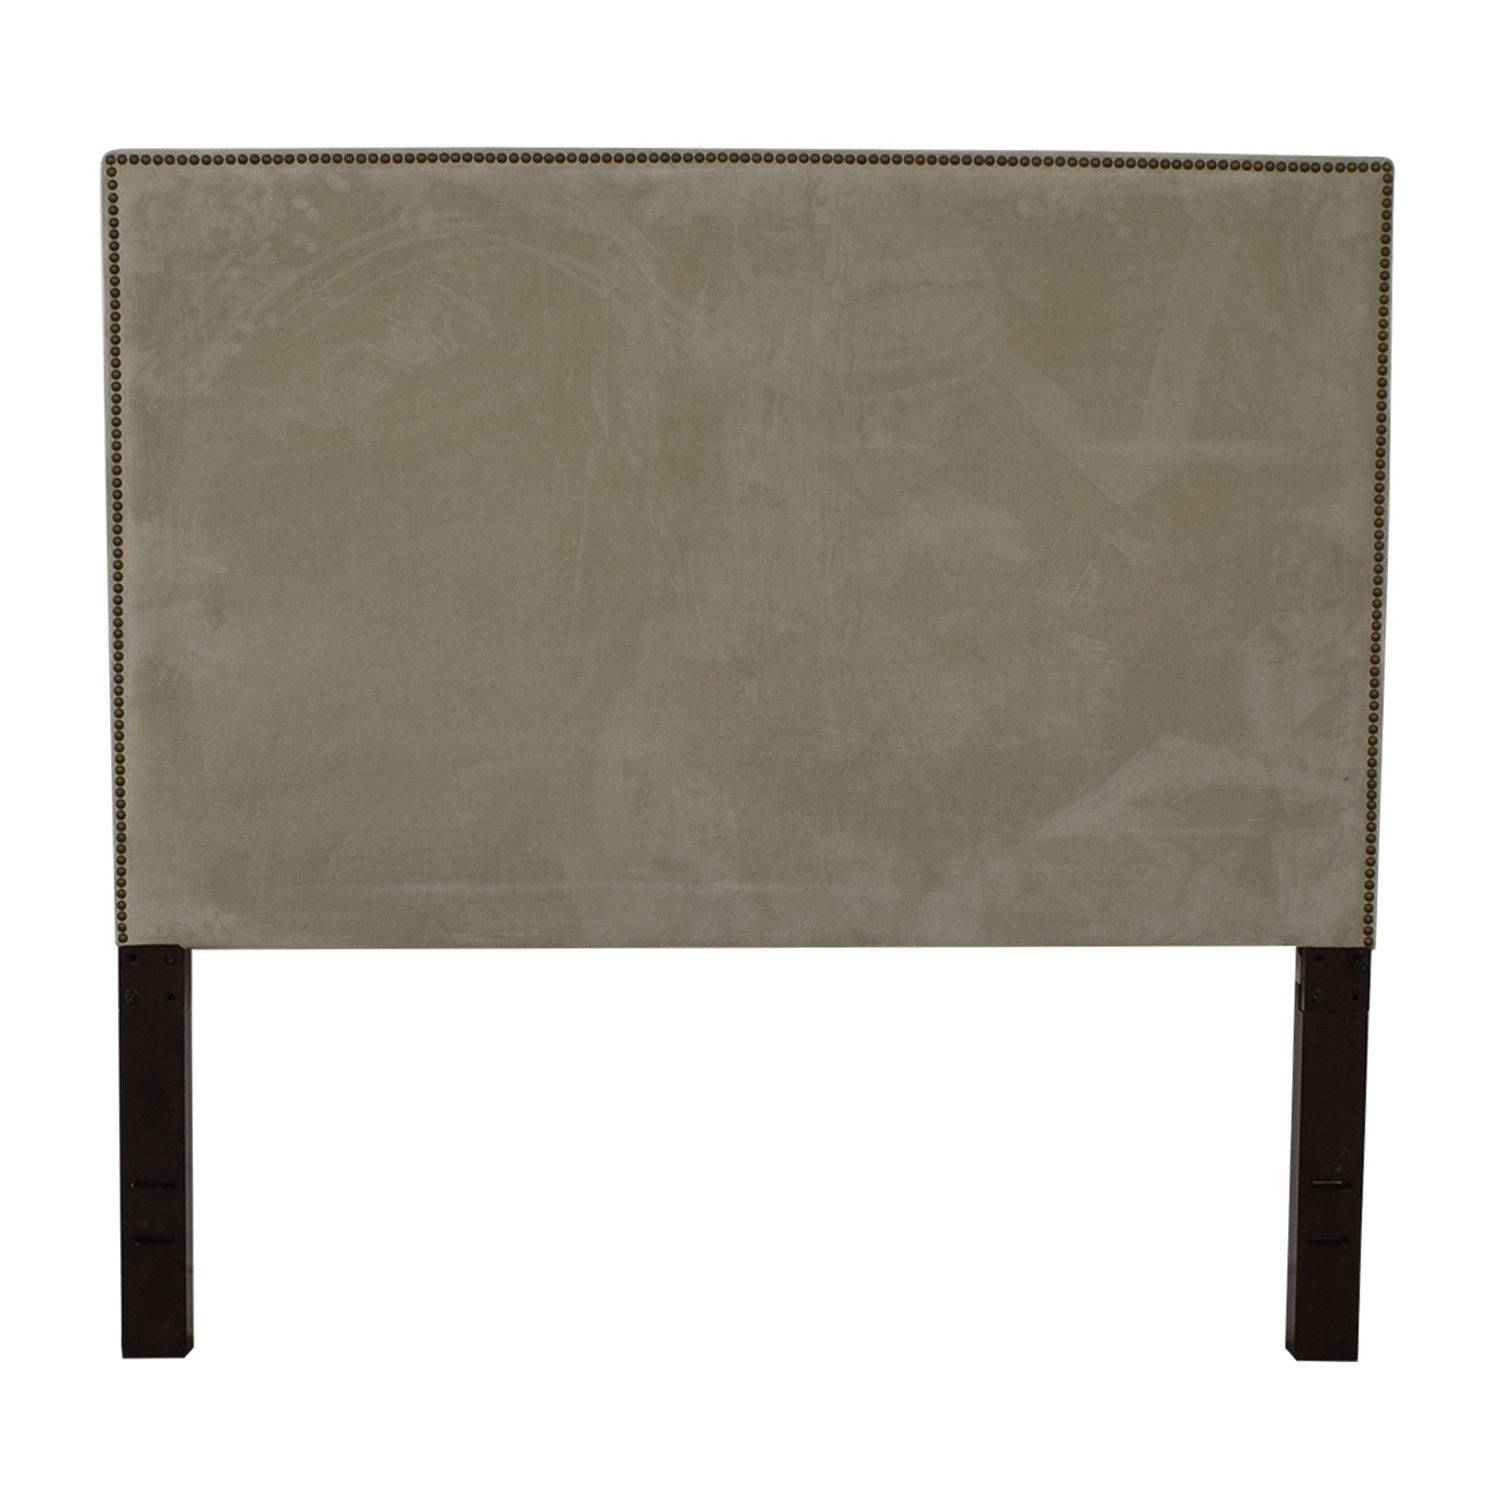 67% OFF - West Elm West Elm Tall Nailhead Upholstered Headboard / Beds